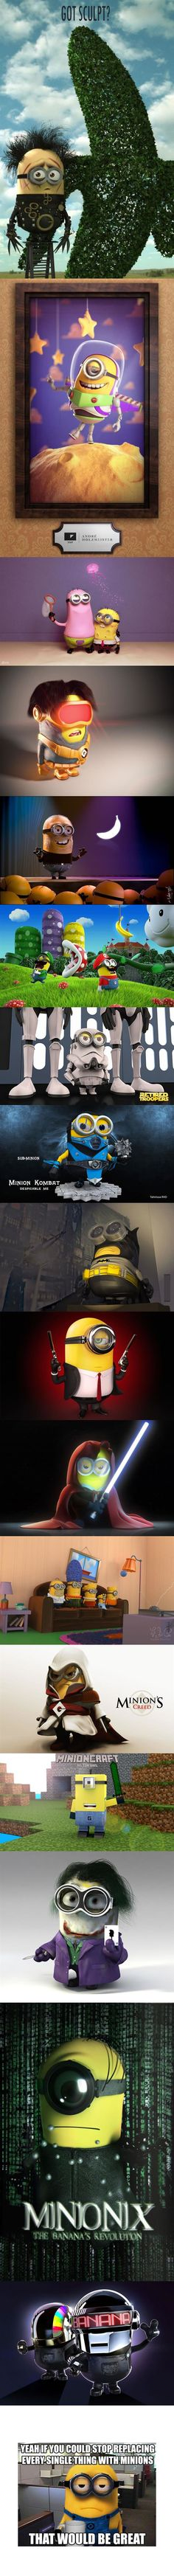 Despicable Me - Minions Everywhere